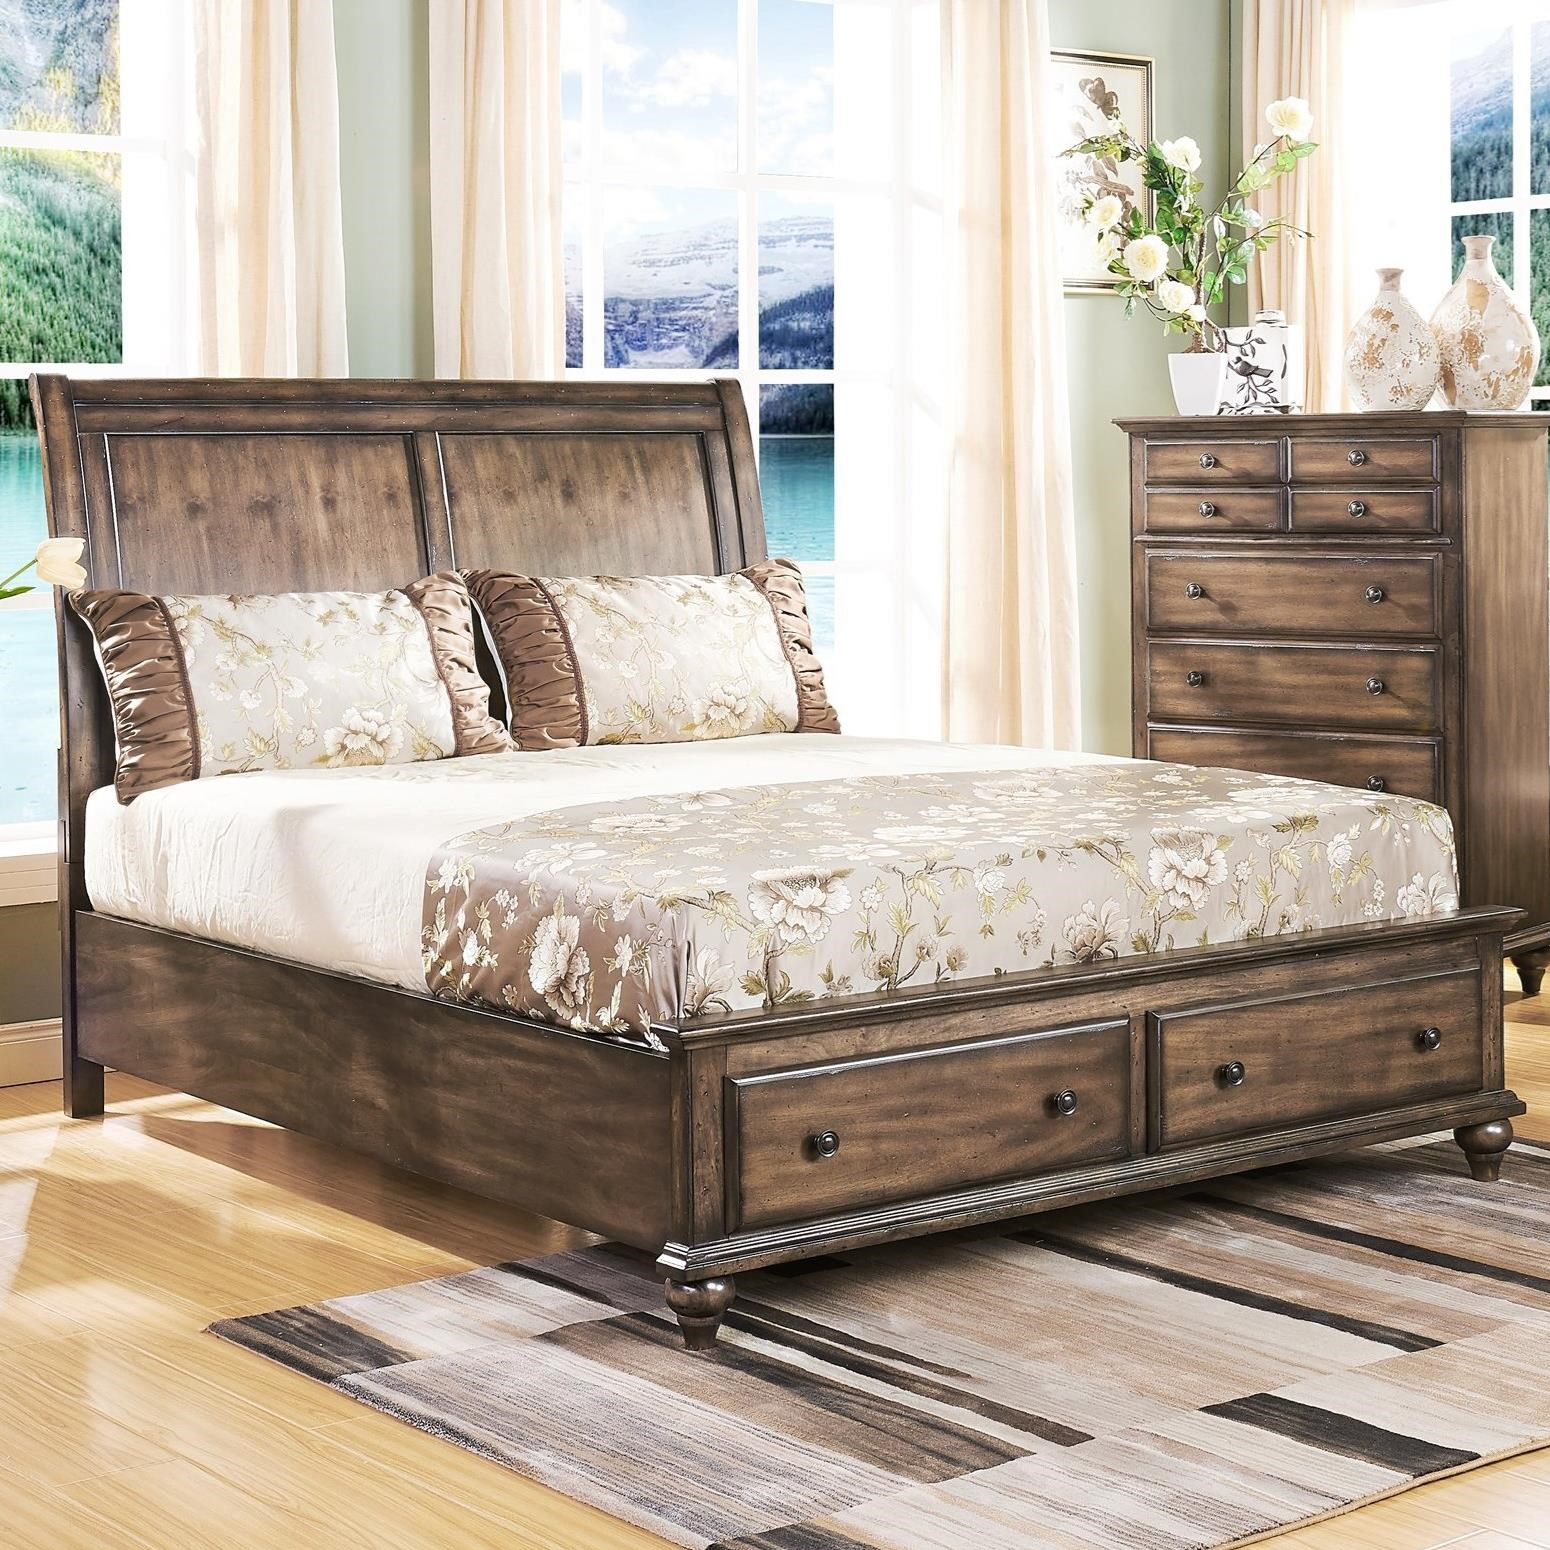 Ashley Furniture Horseheads Ny: New Classic Fallbrook Queen Sleigh Bed With Storage